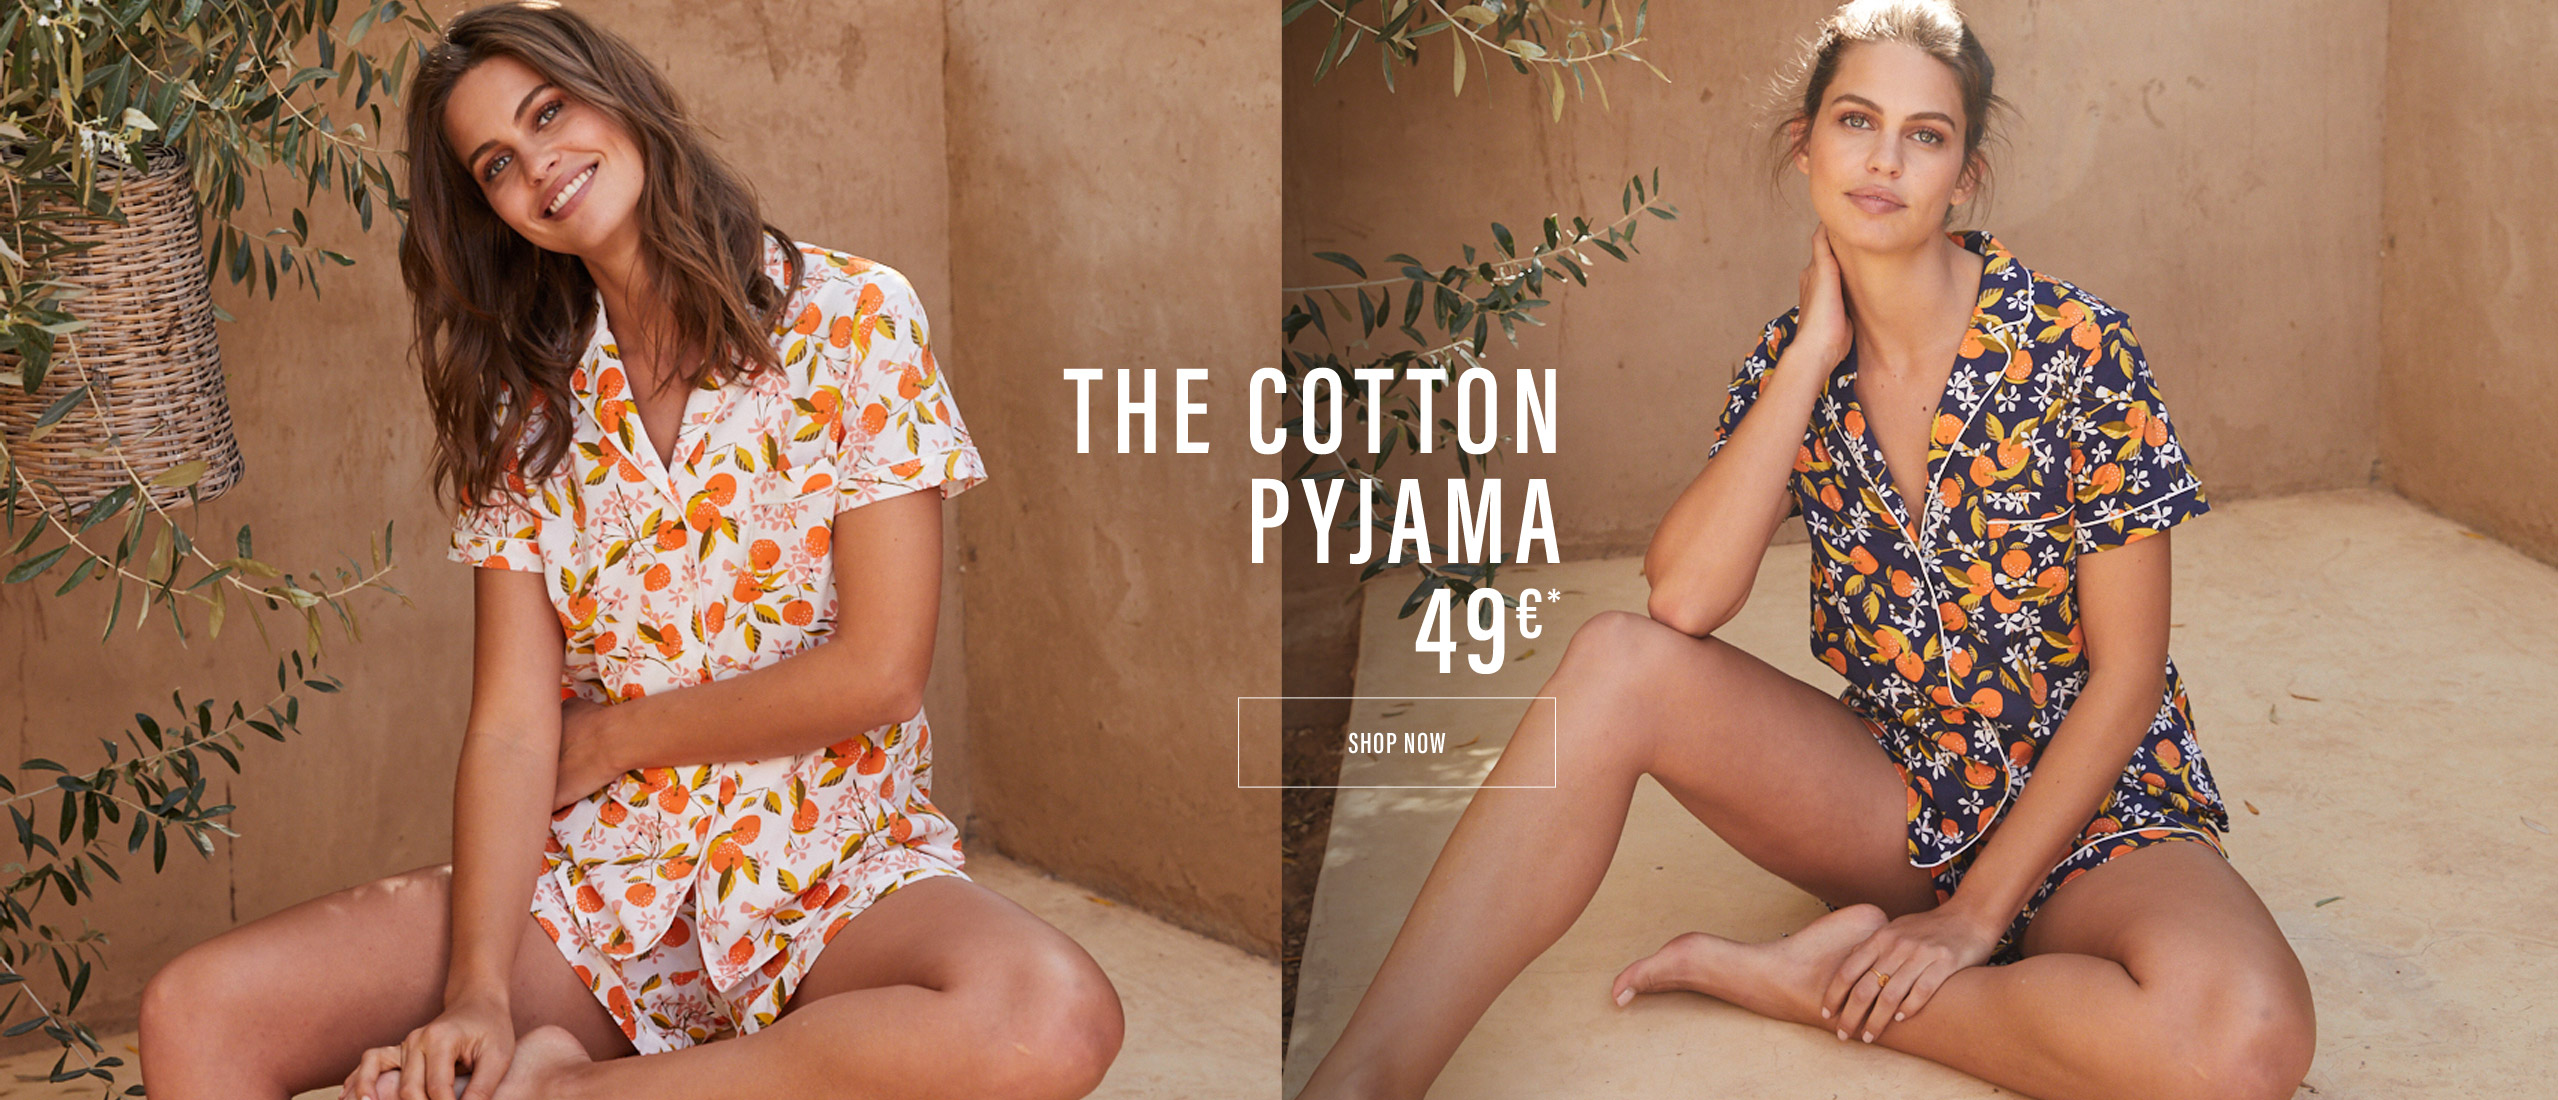 The cotton pyjama 49€